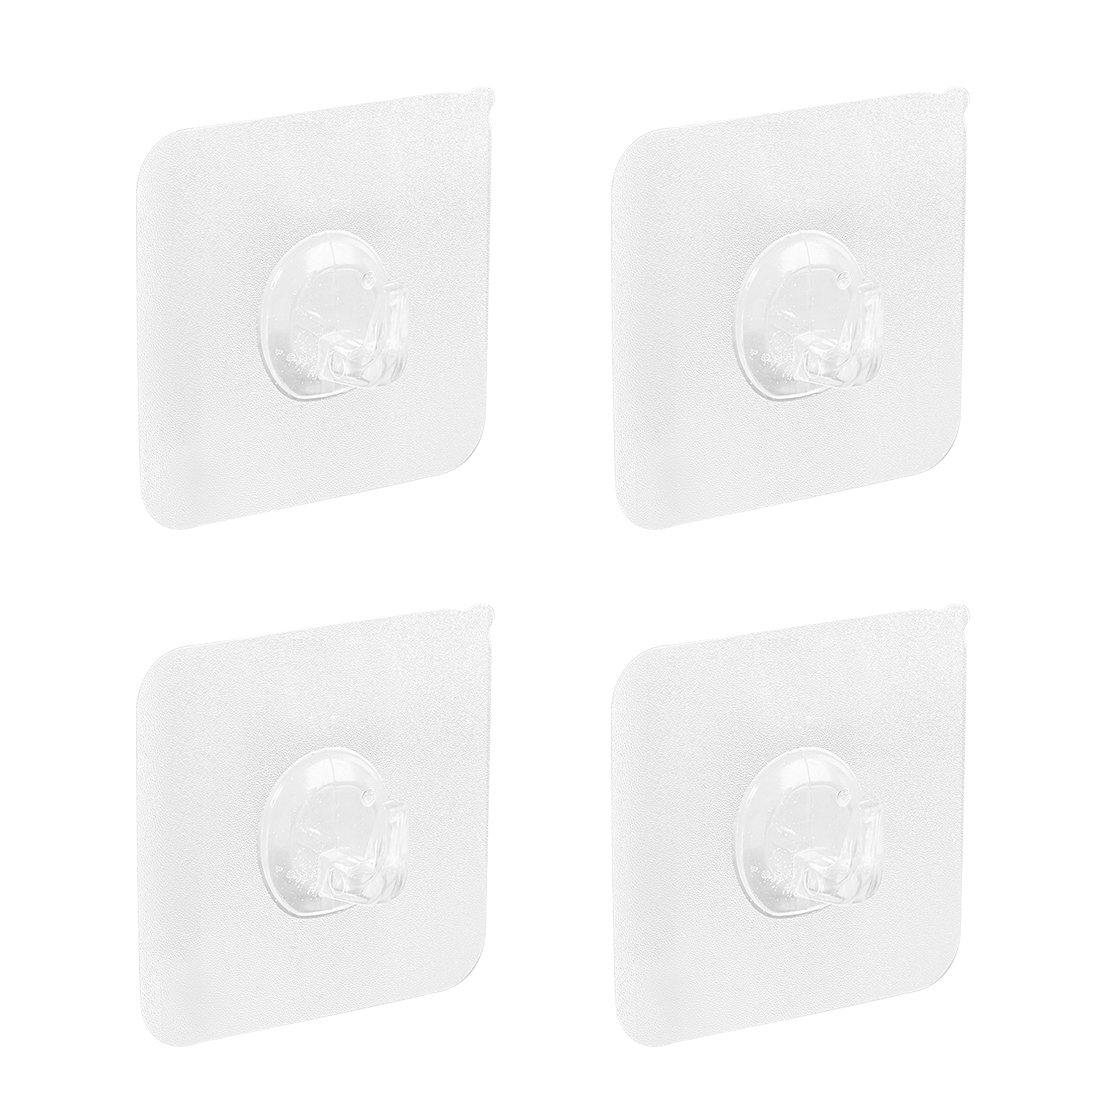 Wall Hooks Self Adhesive Hooks Plastic Waterproof Hook 60mmx60mm Clear , 4pcs